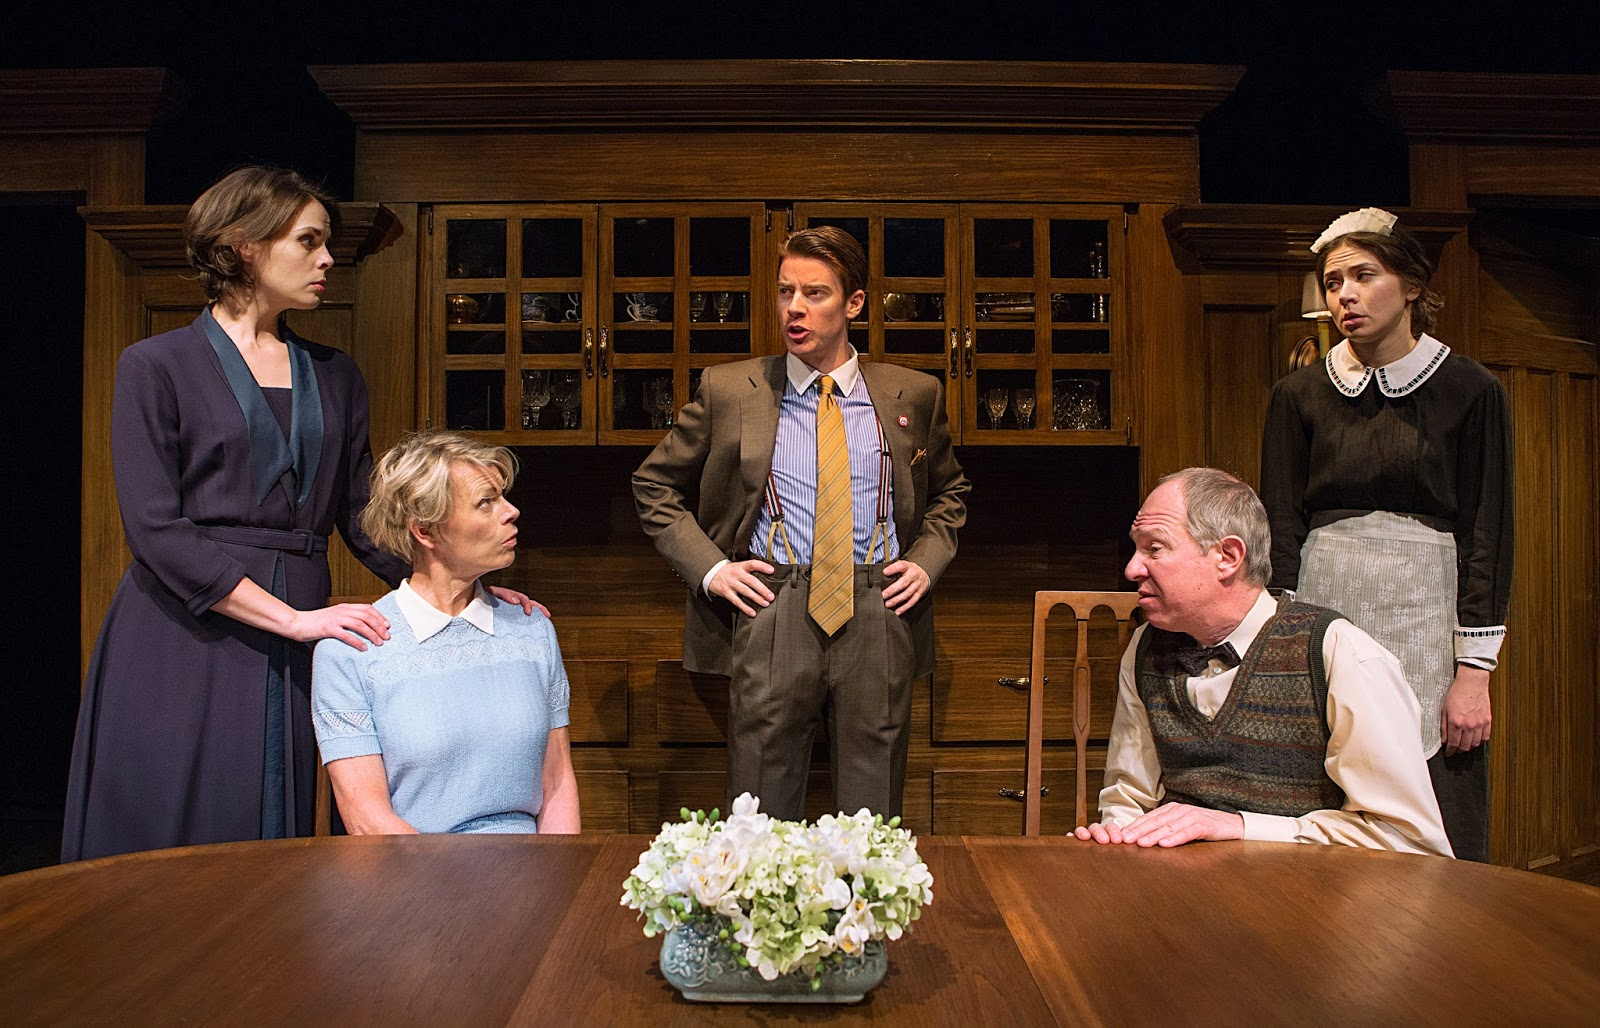 James karas reviews and views the dining room review of the dining room review of soulpepper production of gurneys play sxxofo